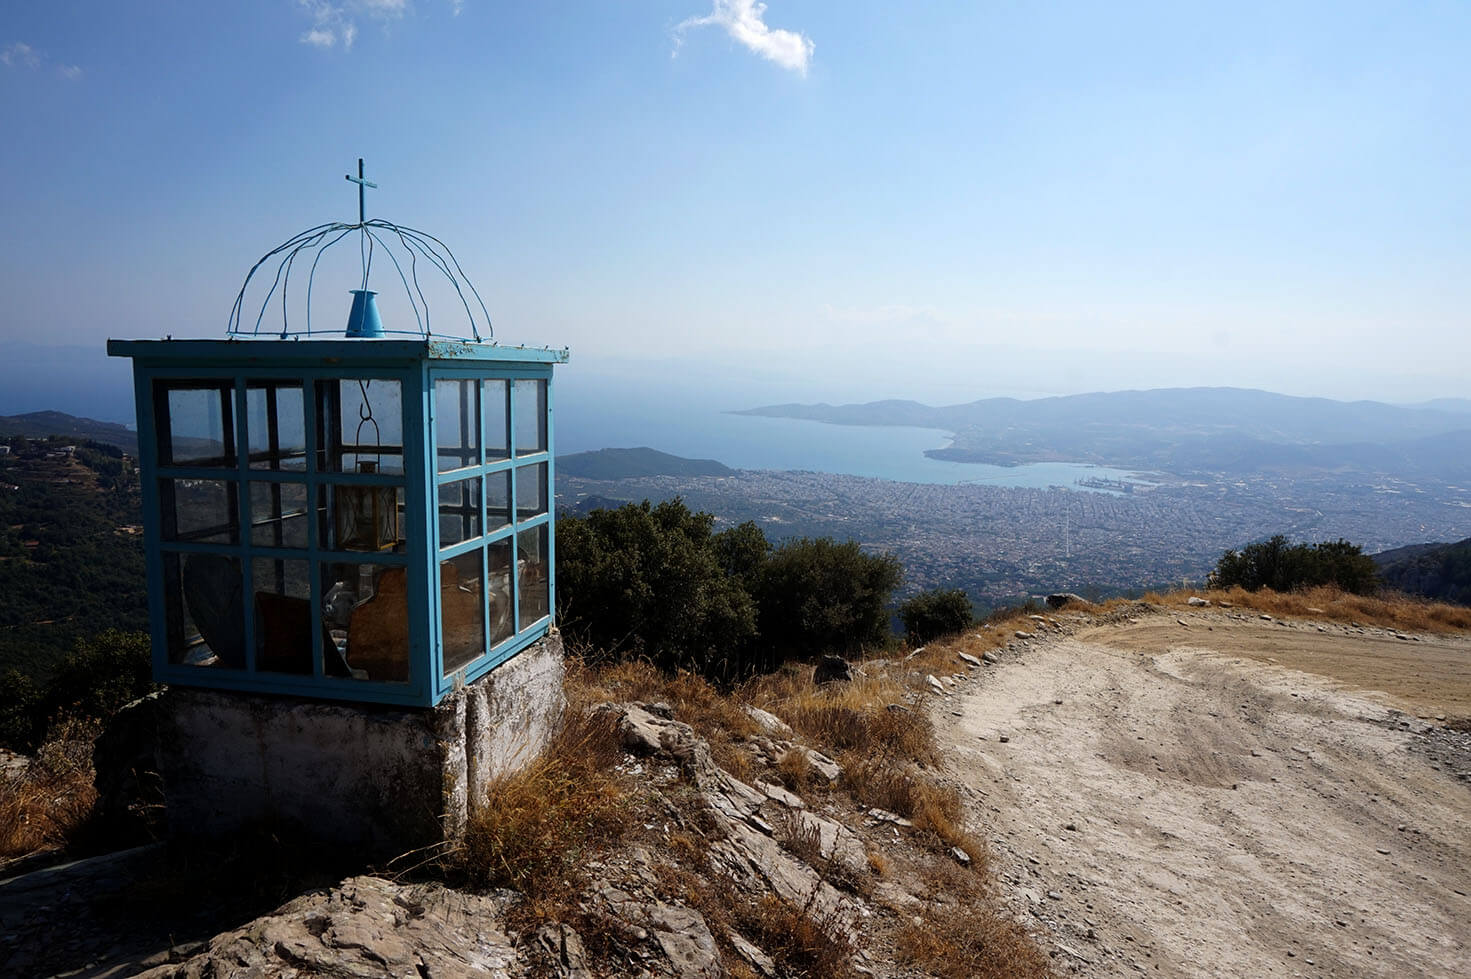 Views from Mount Pelion